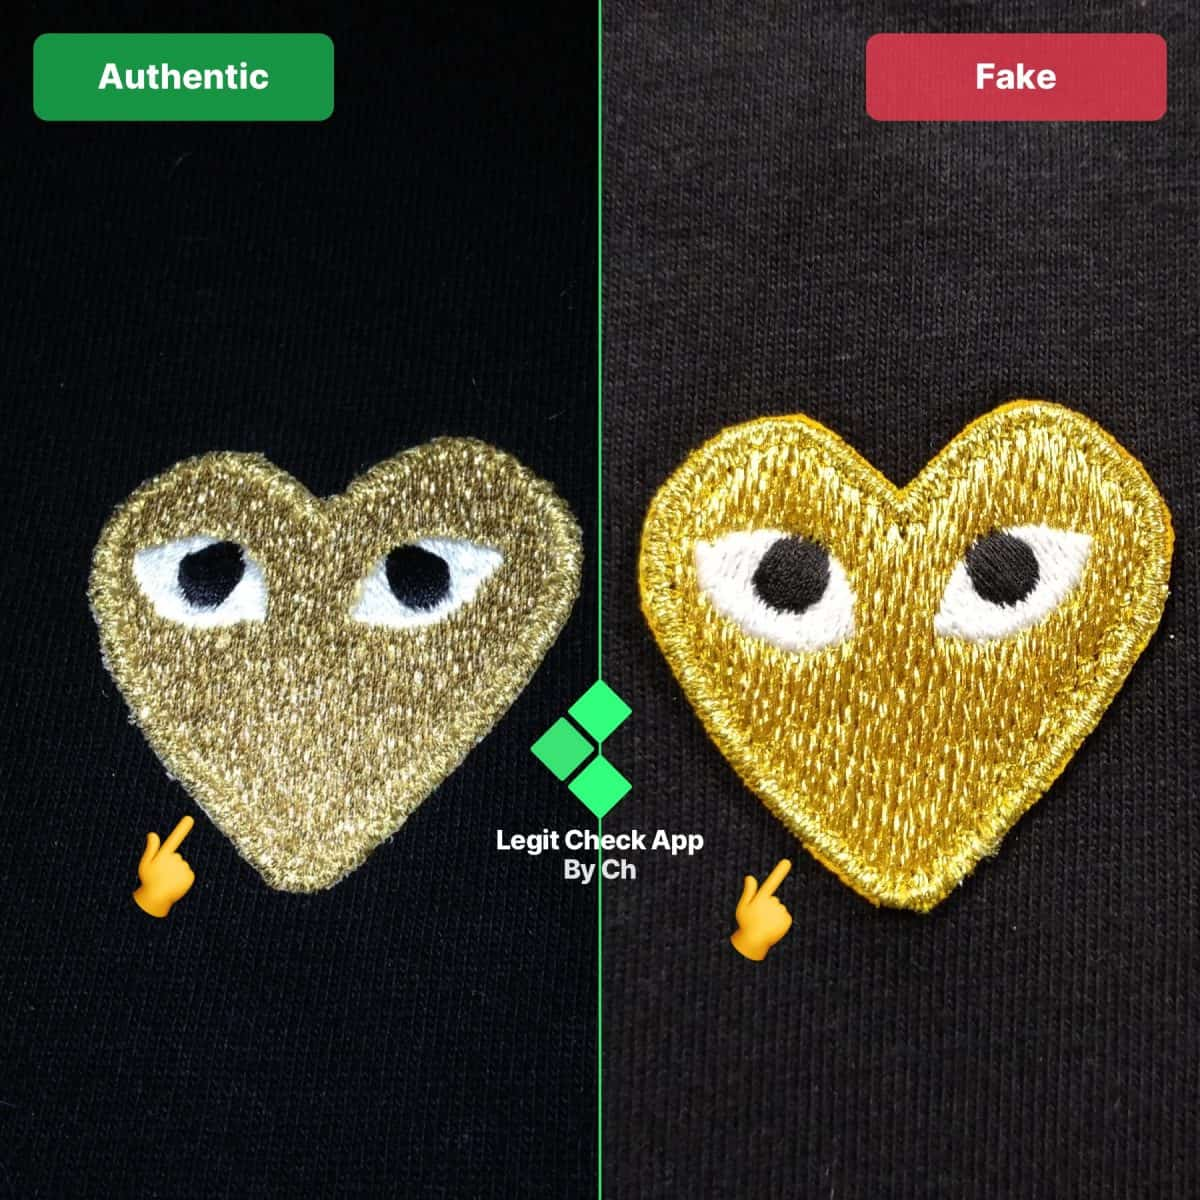 How To Spot Fake Comme Des Garcons Heart - Real Vs Fake CDG Heart